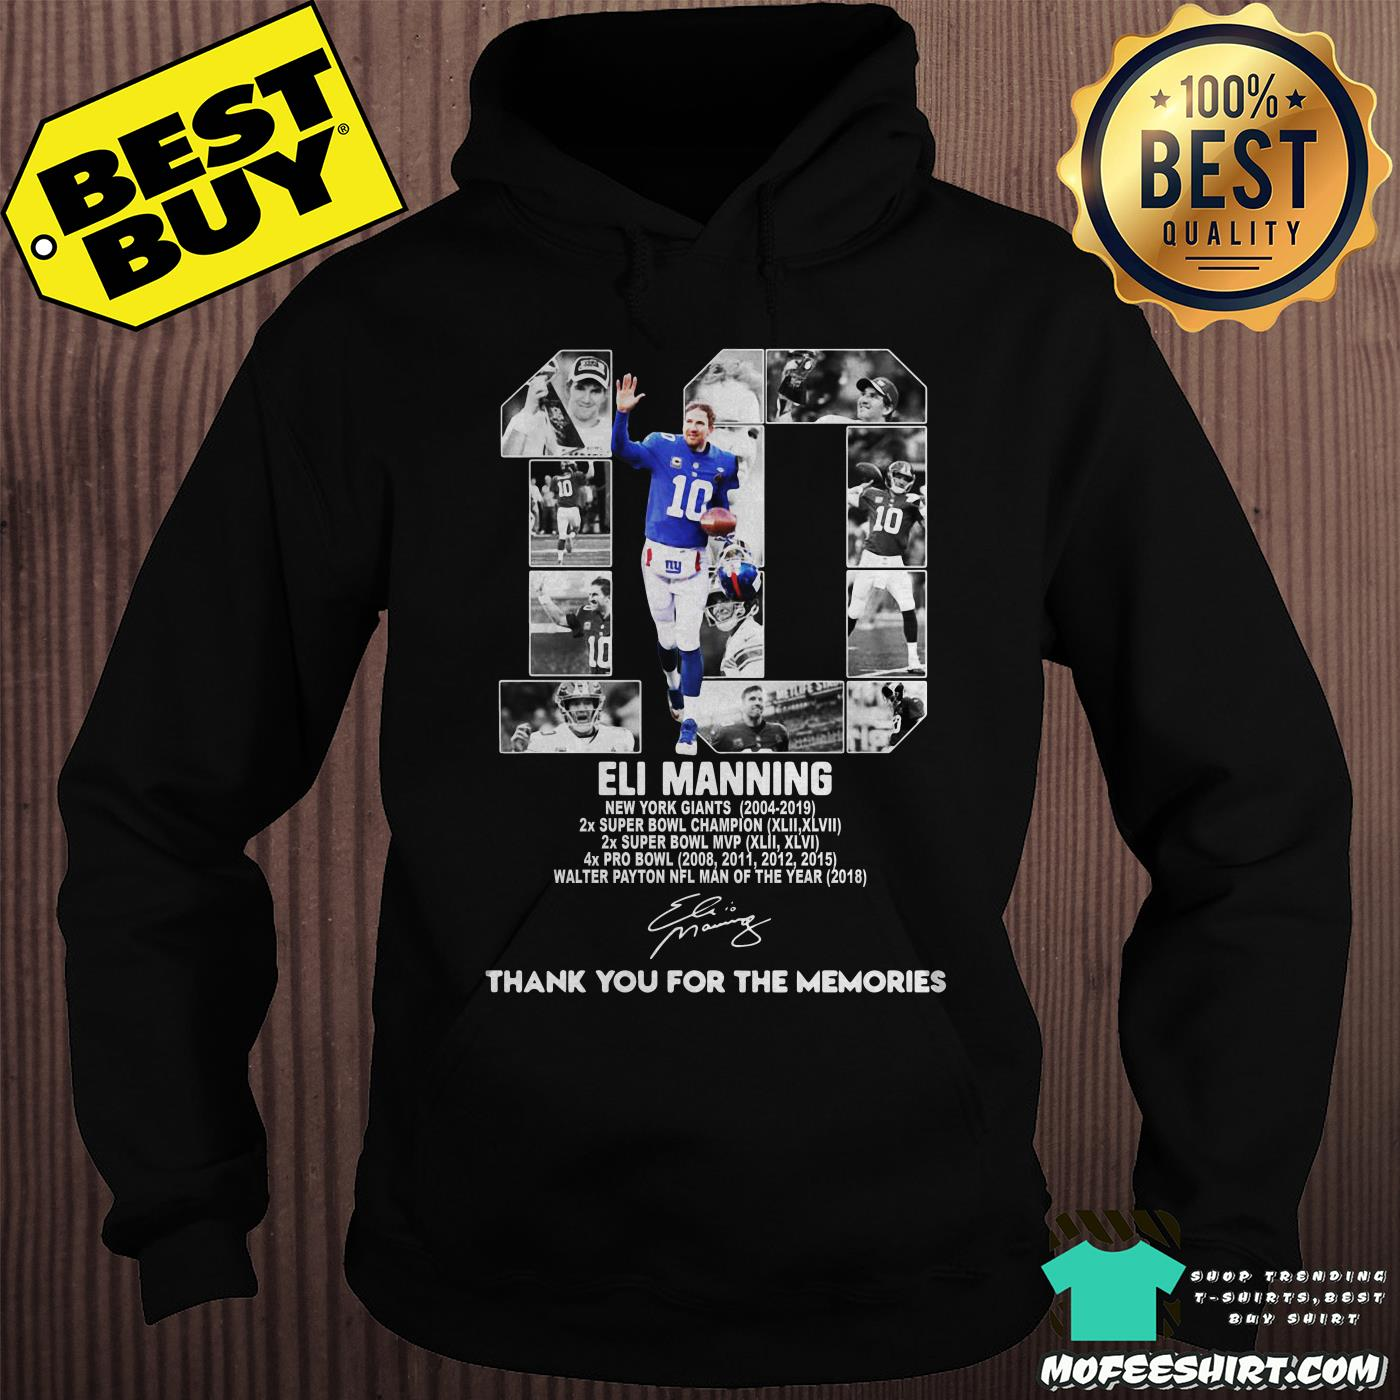 10 eli manning new york giants 2004 2019 thank you for the memories signatures hoodie - 10 Eli Manning New York Giants 2004-2019 thank you for the memories signatures shirt